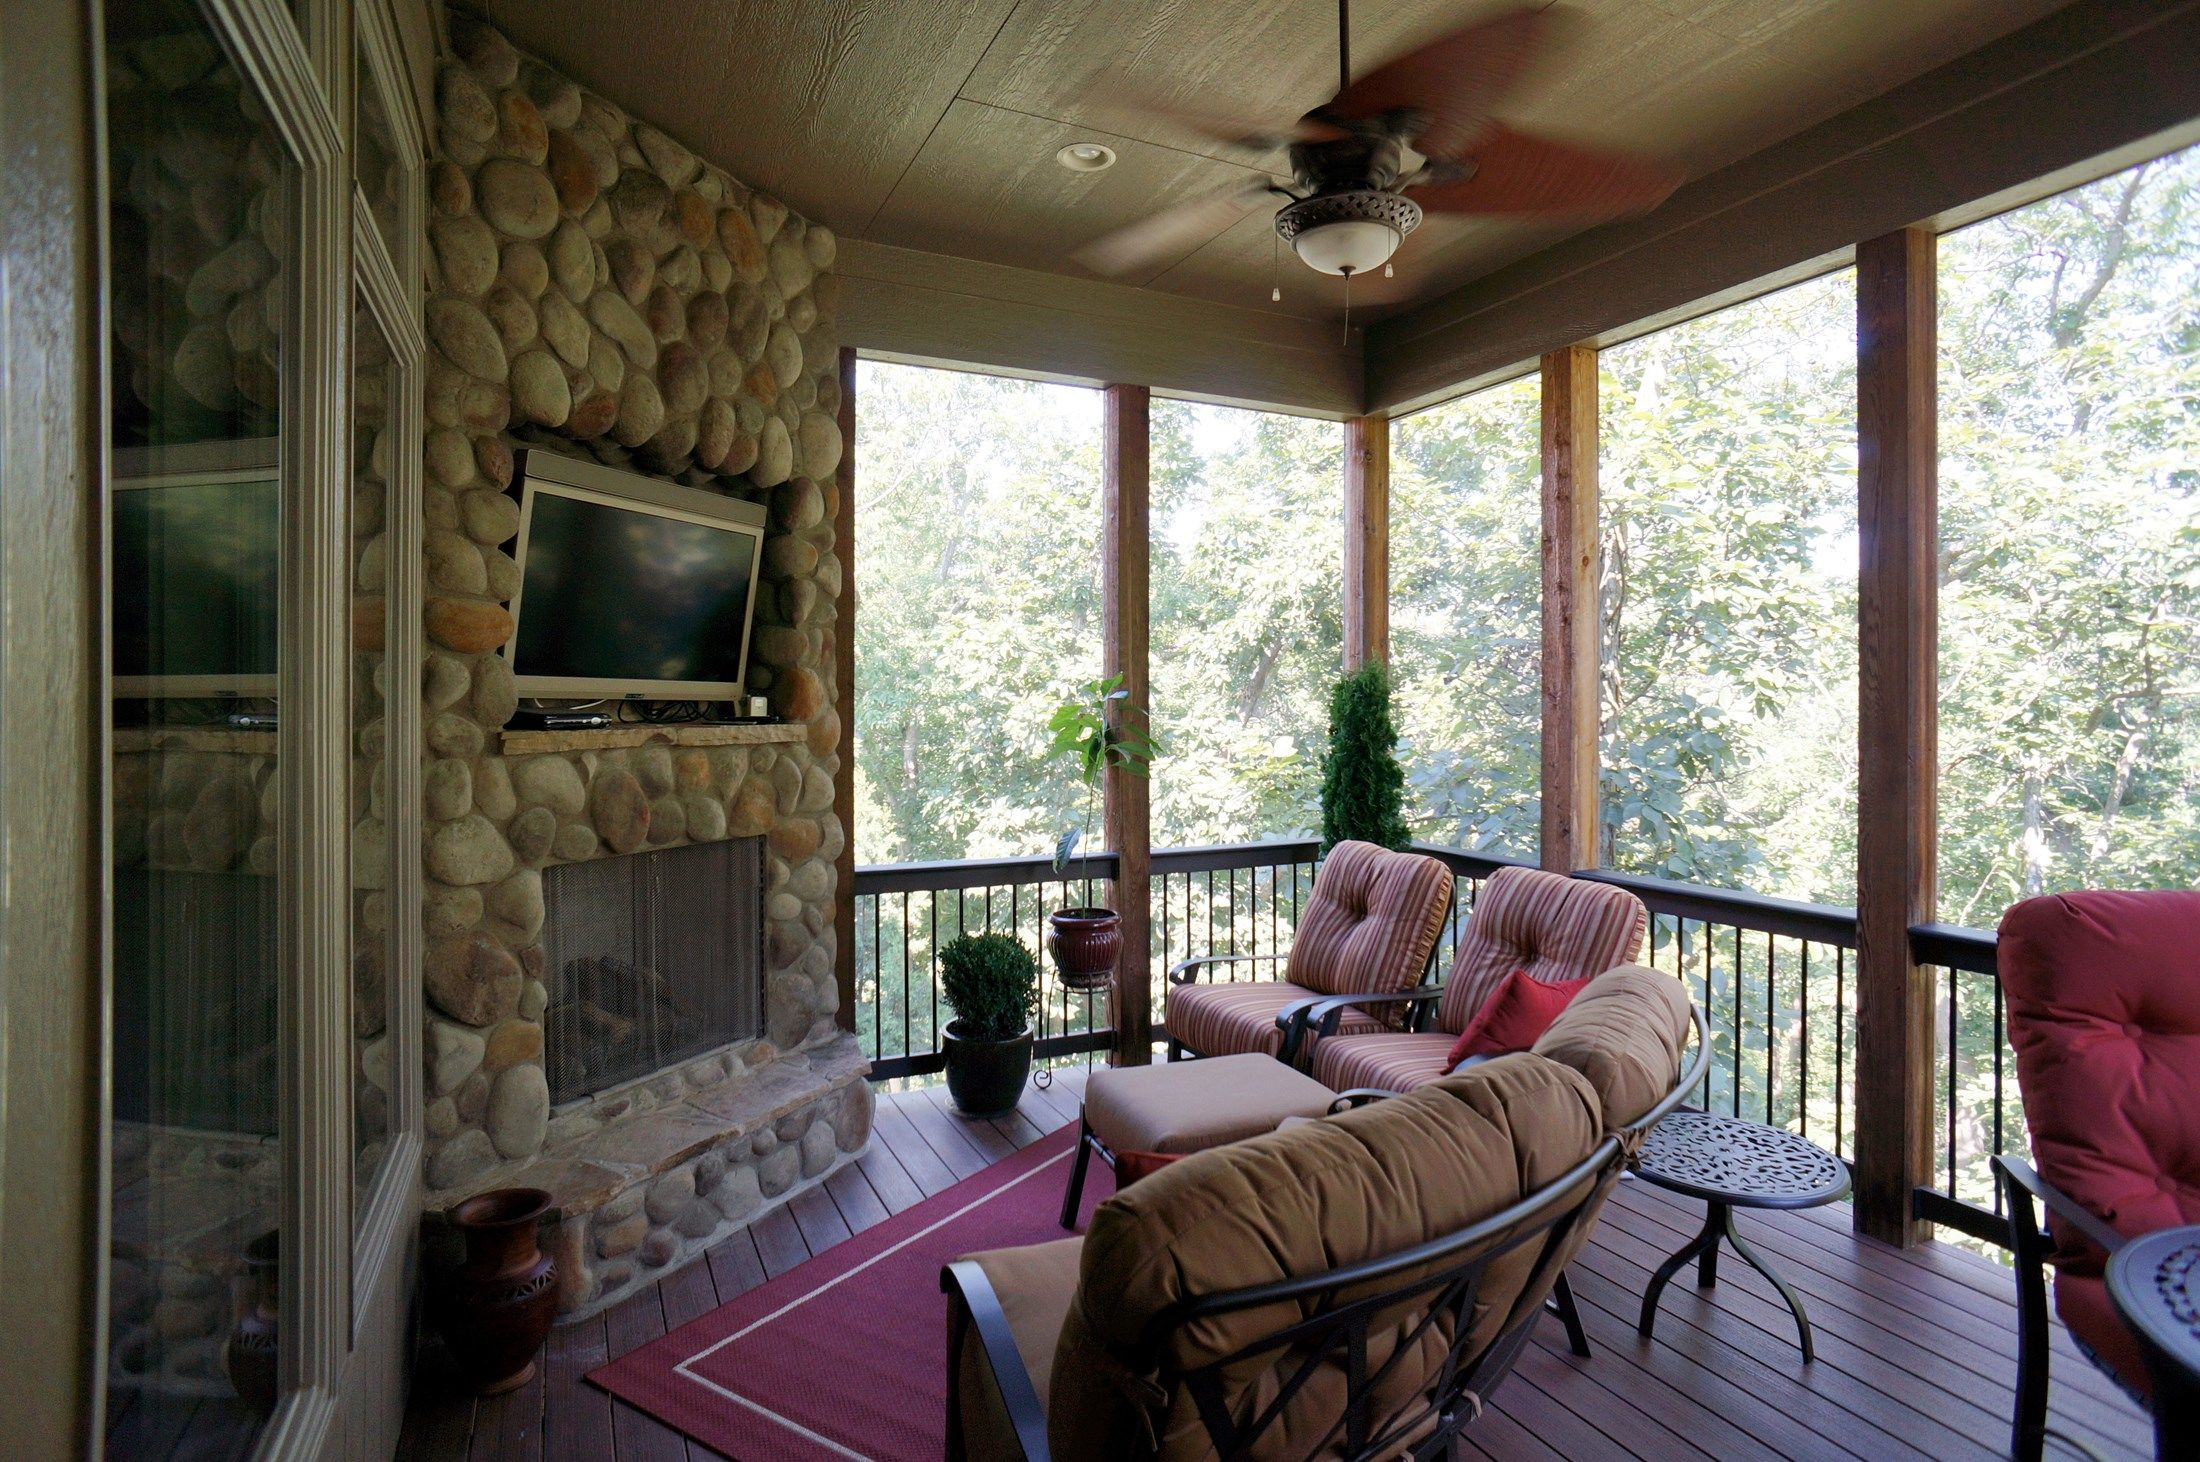 Hip Roof Screened Porch - Picture 5279